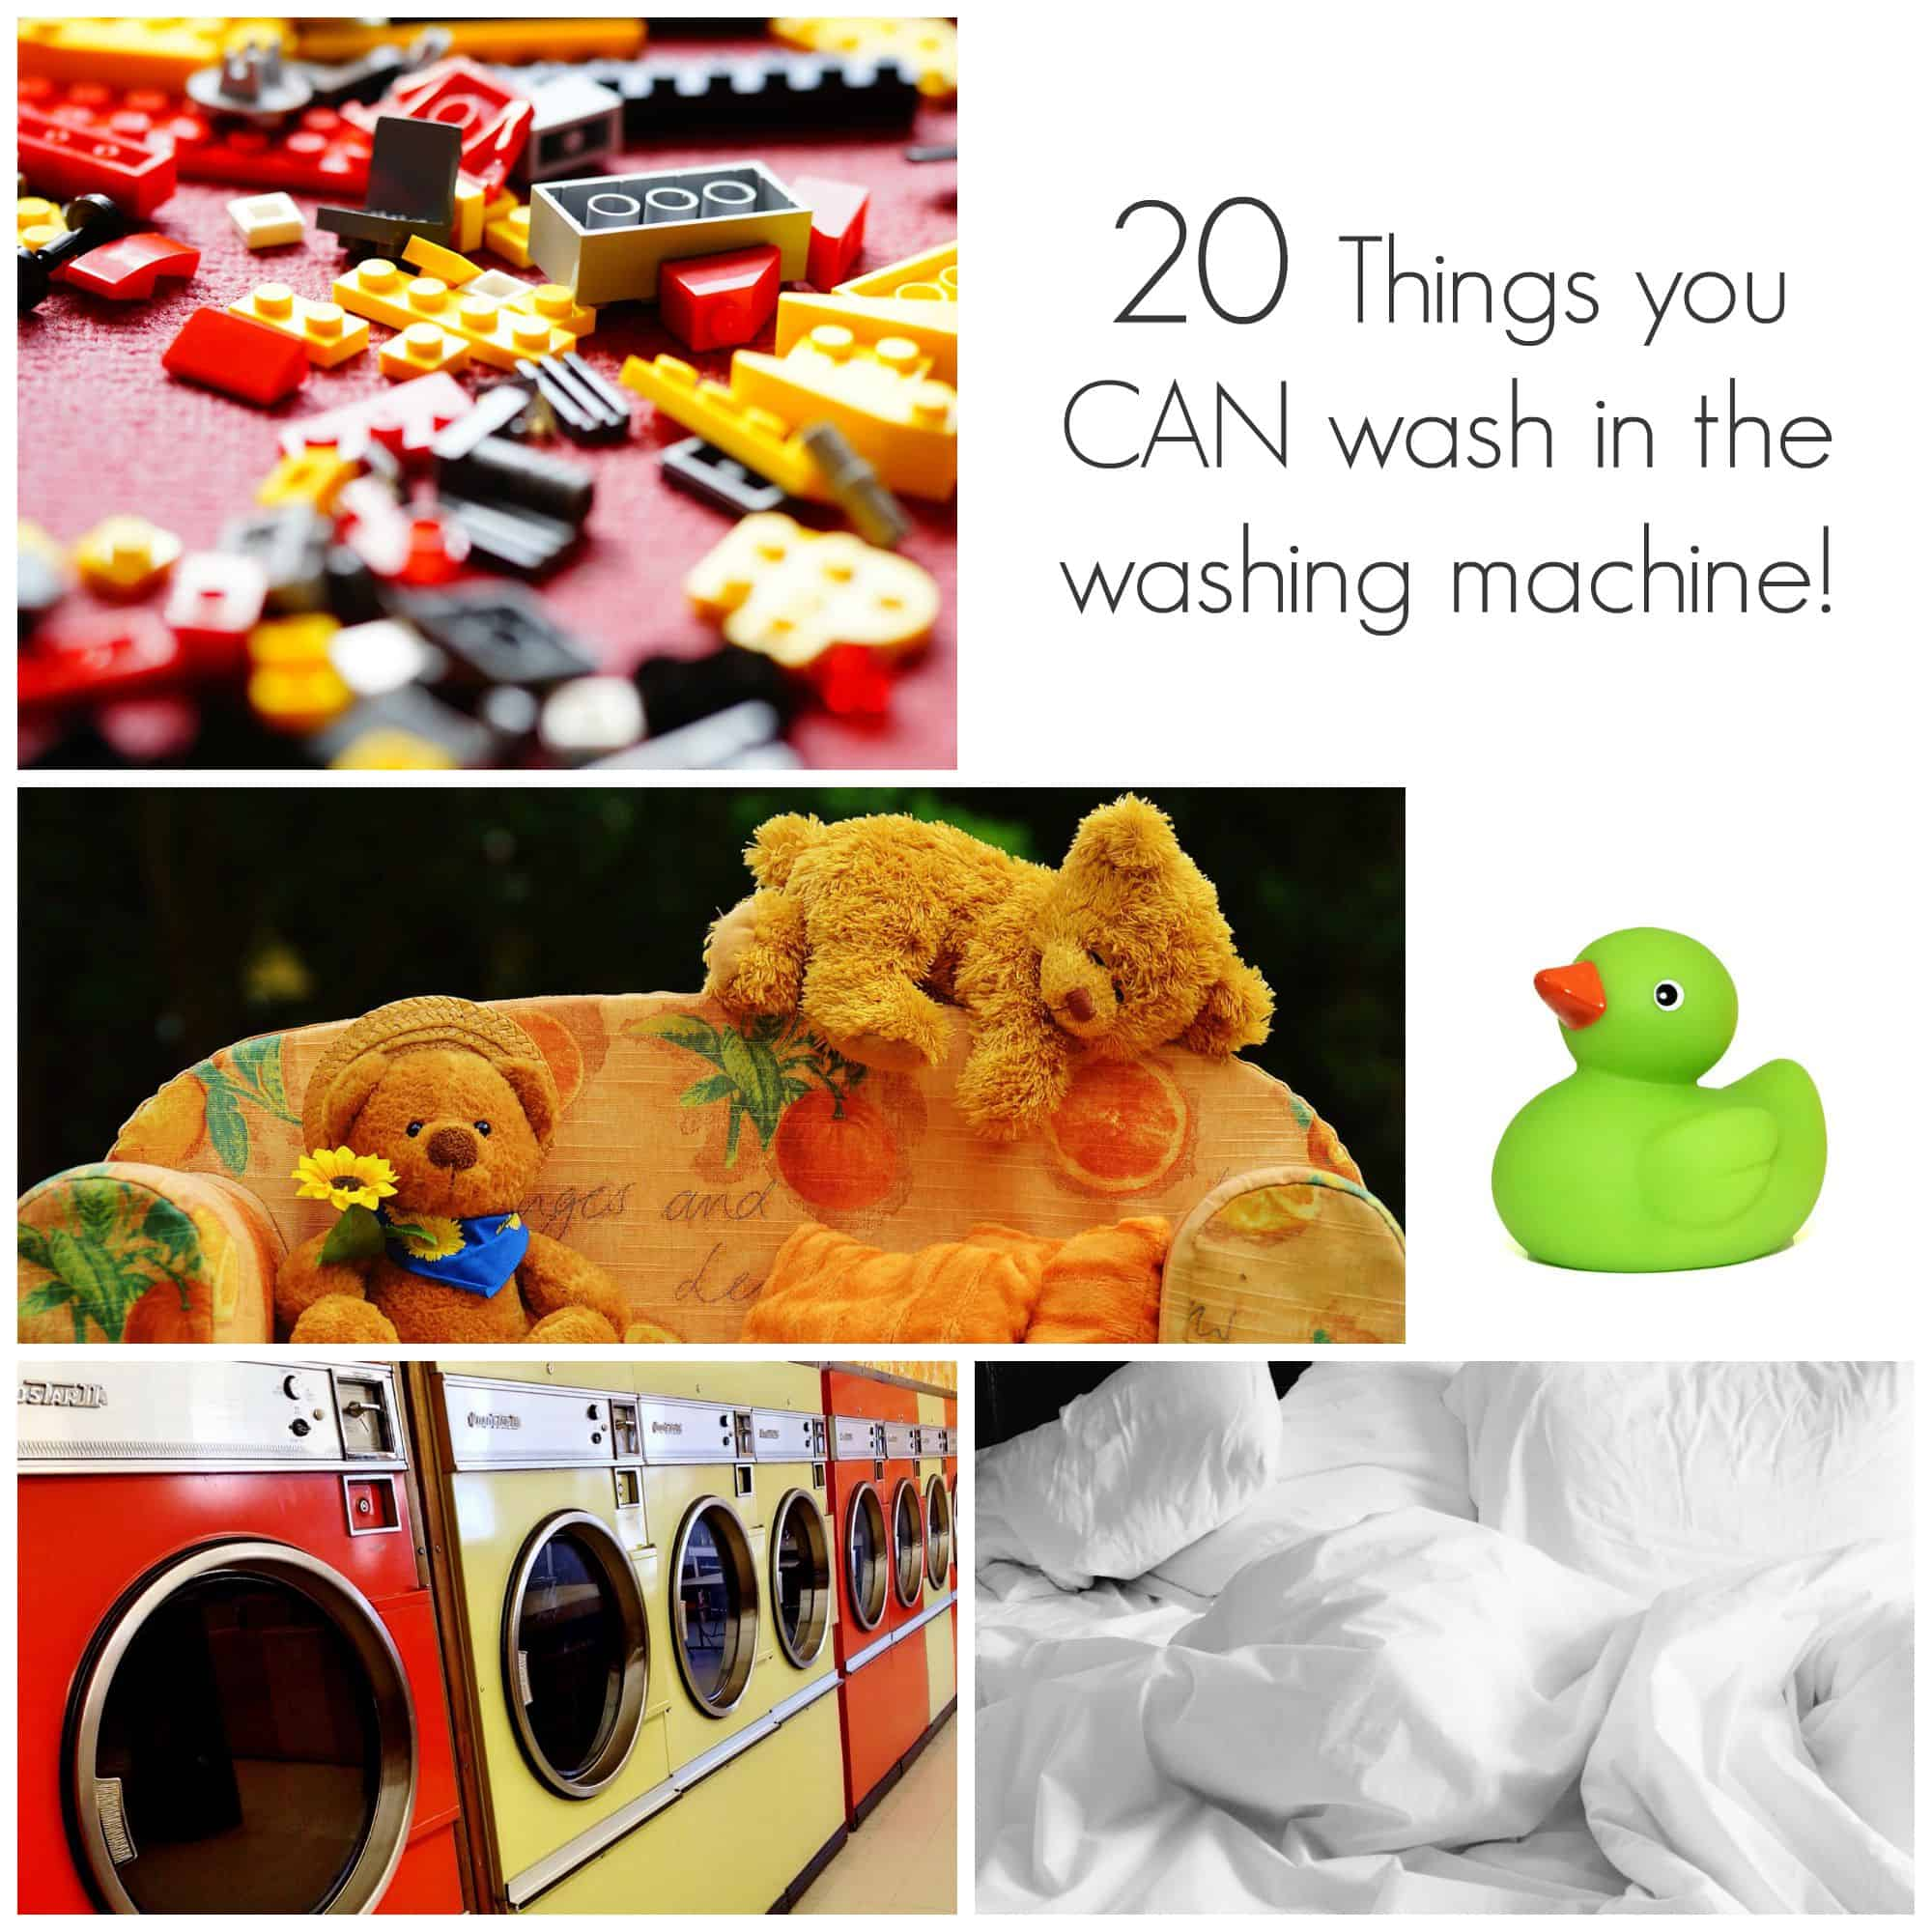 20 Things You Can Wash In The Washing Machine